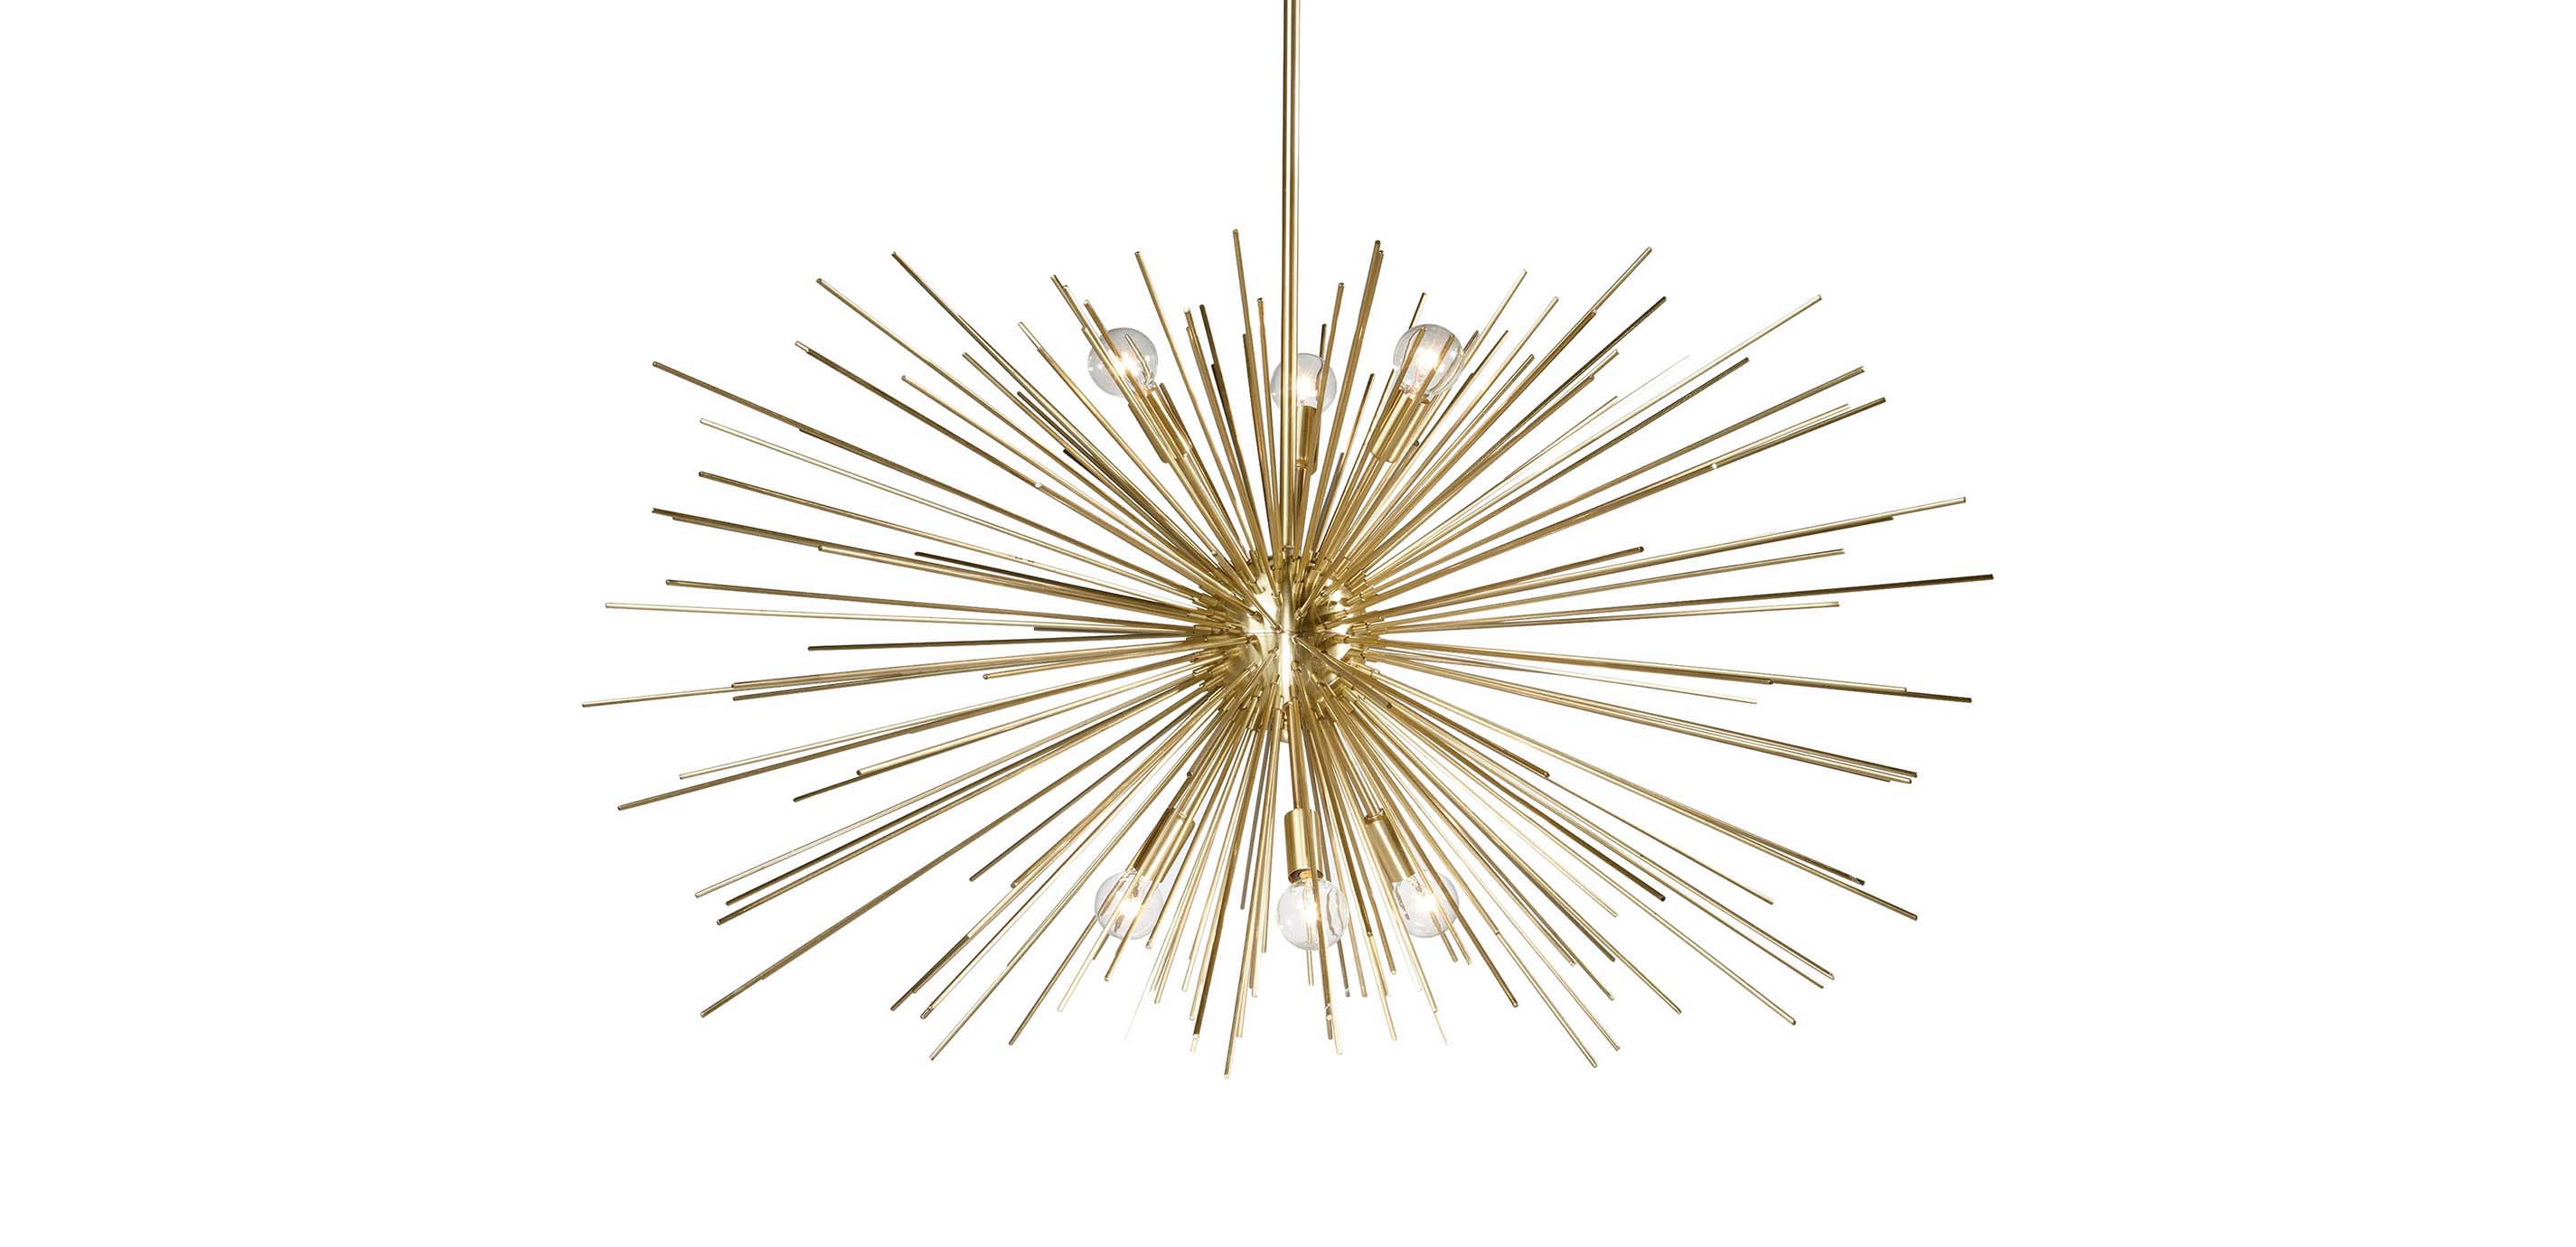 Starburst chandelier chandeliers ethan allen images null mozeypictures Images